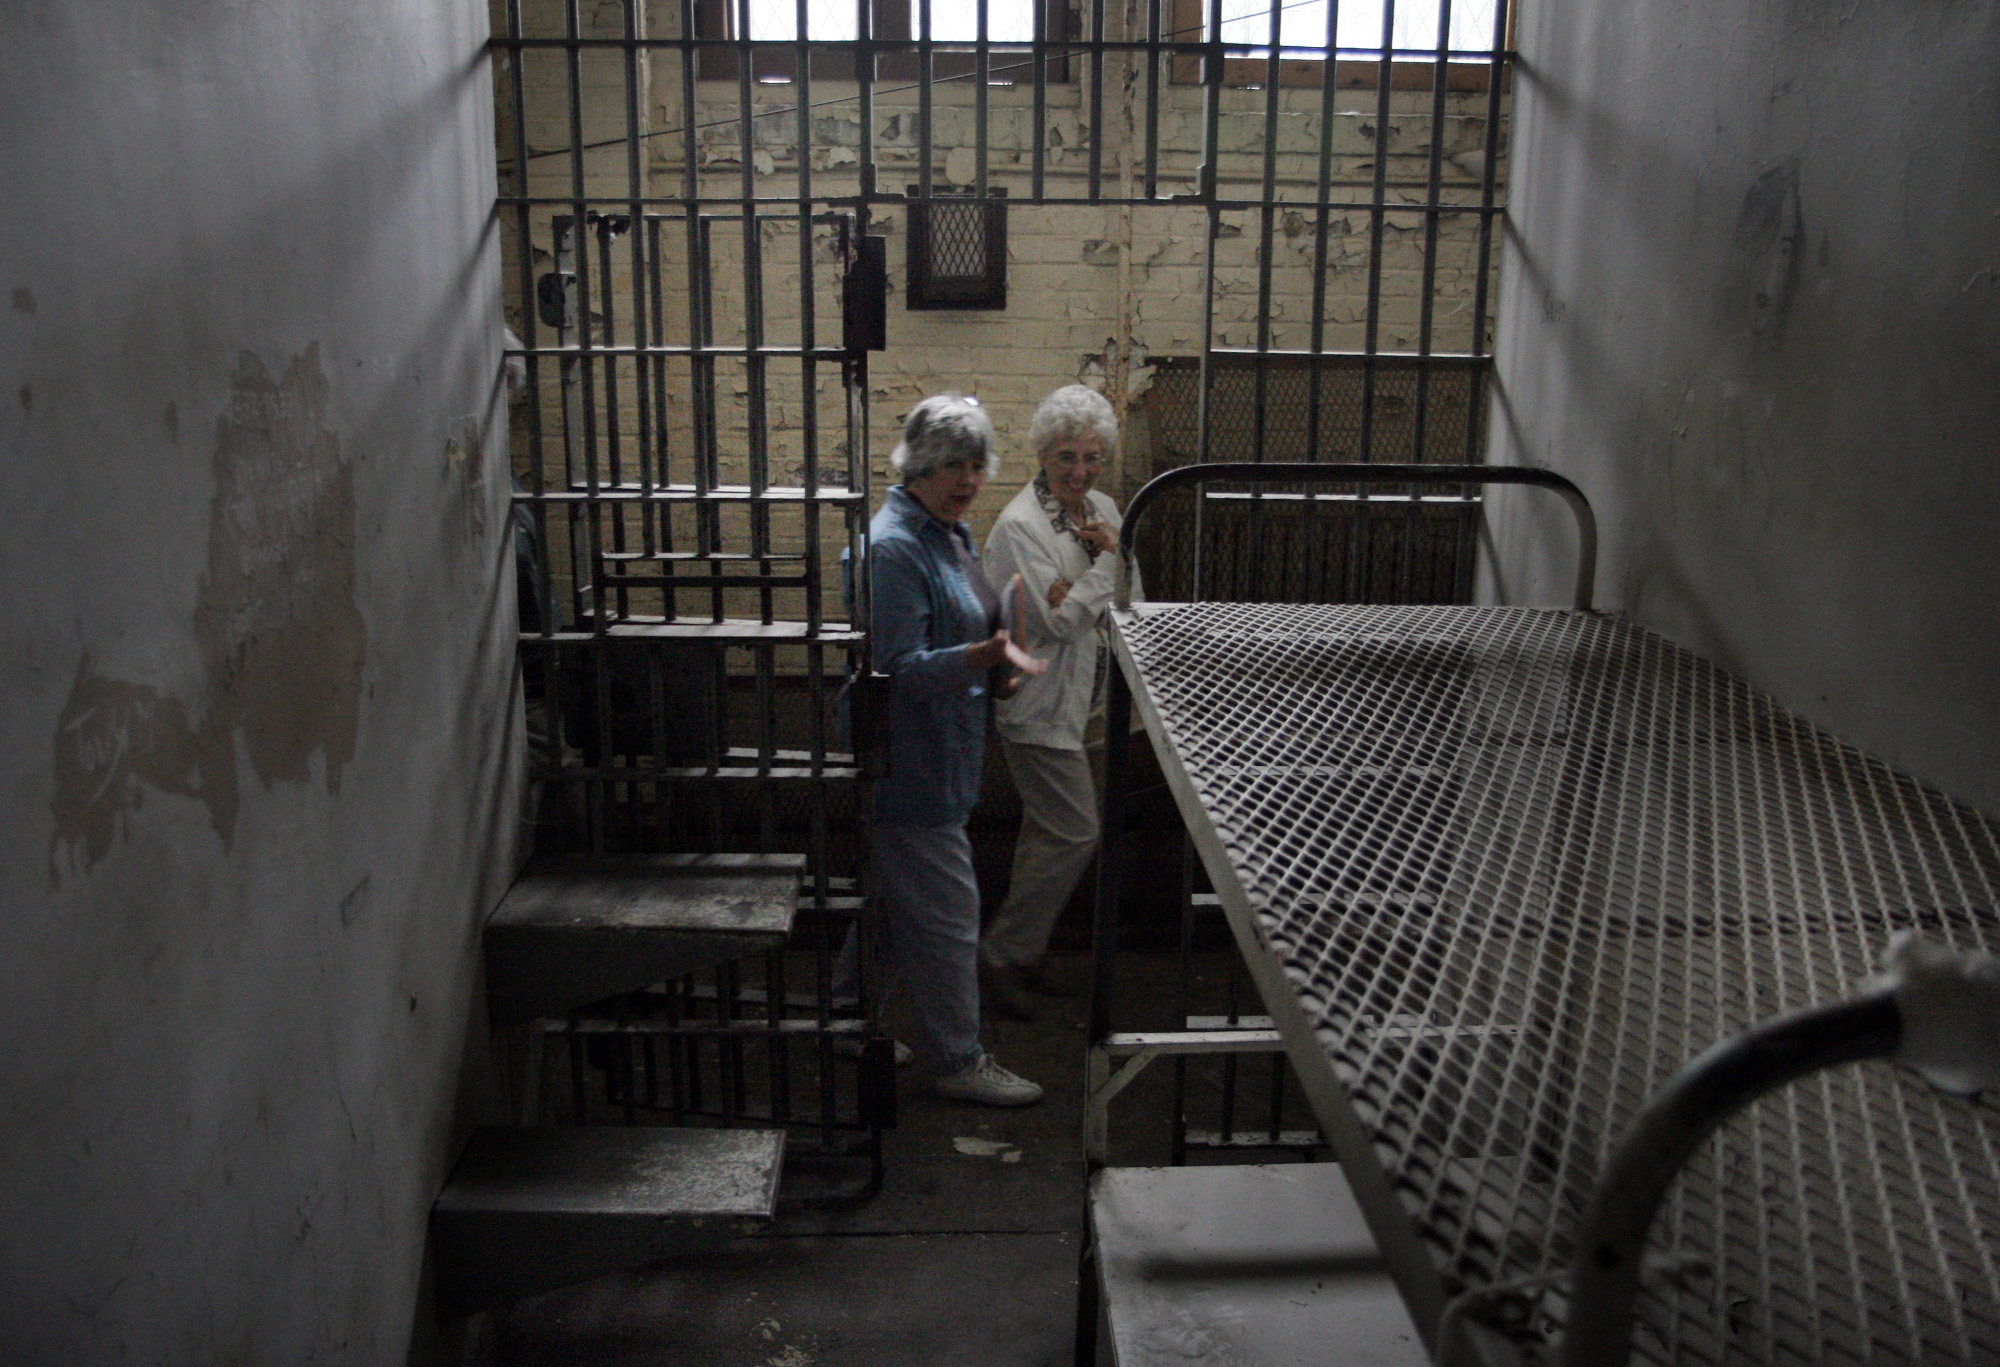 Holding cell at Lorton